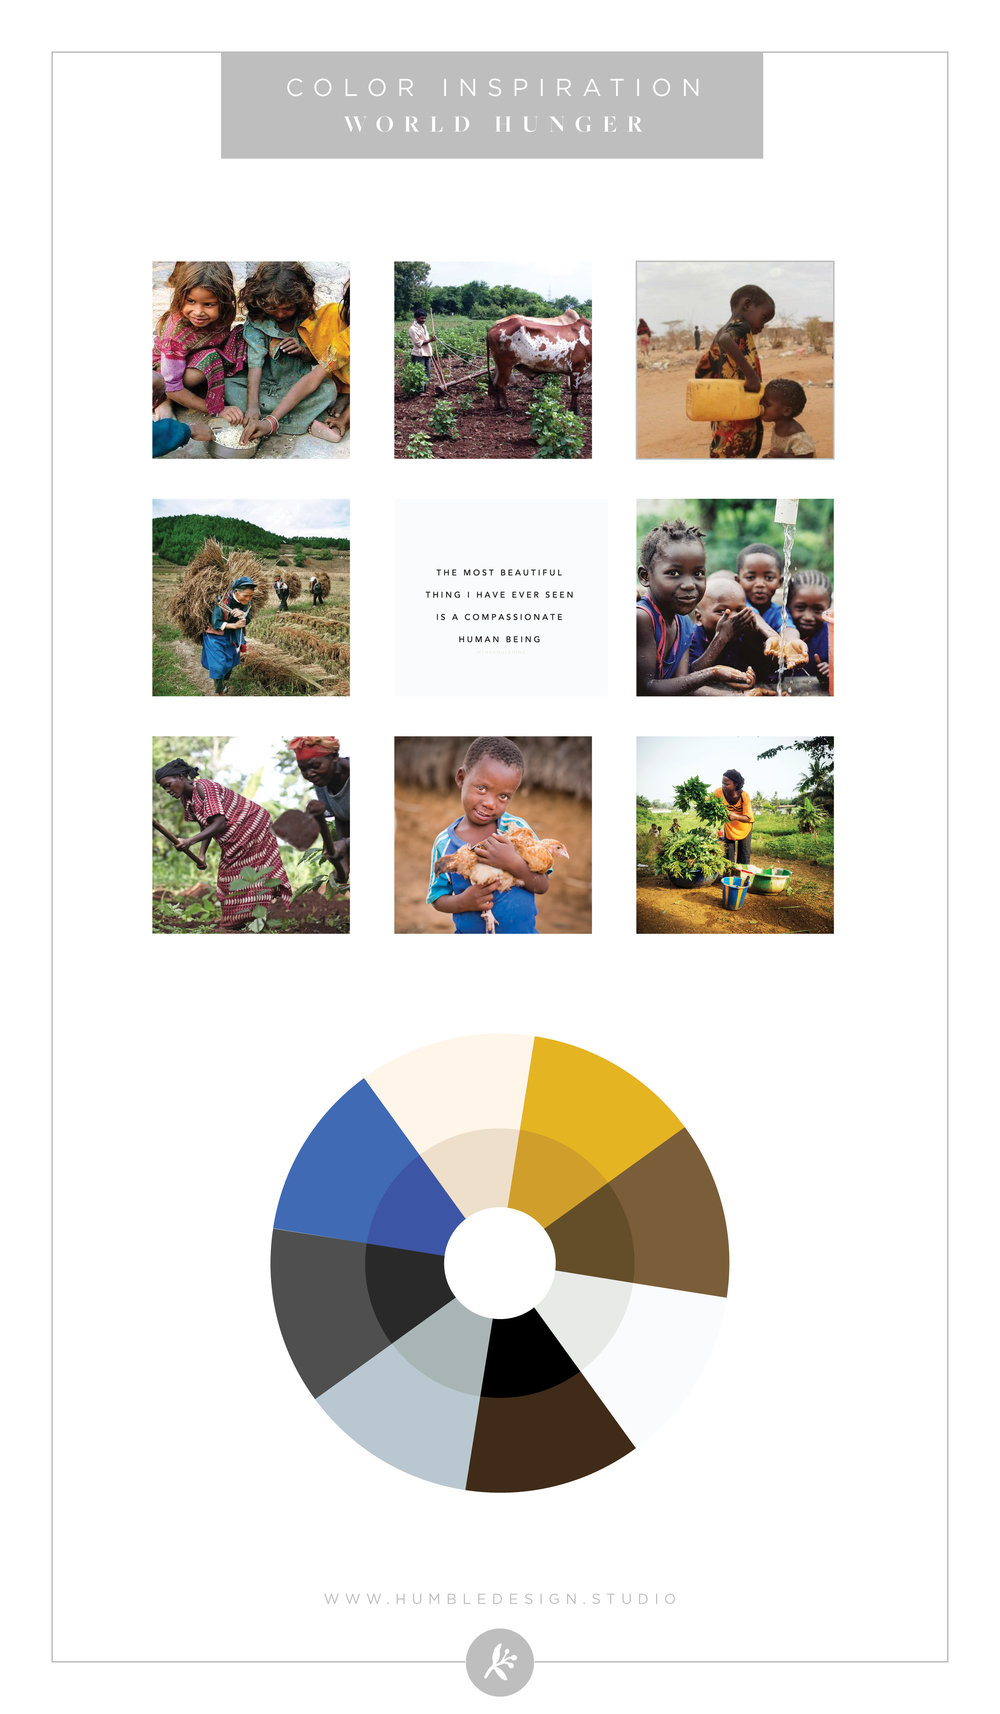 World Hunger Organization Color Palette Inspiration